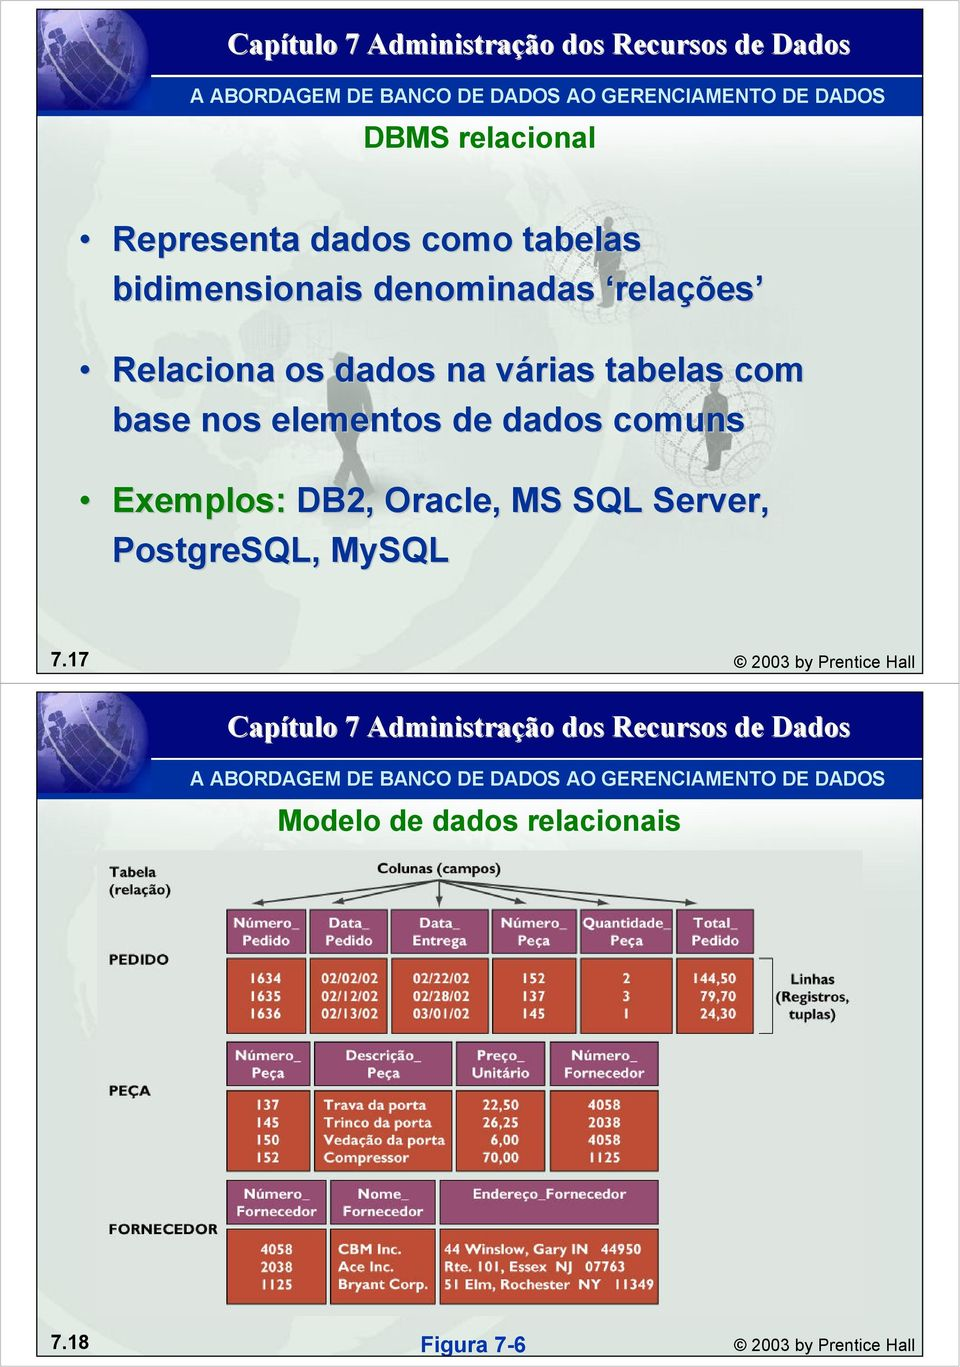 dados comuns Exemplos: DB2, Oracle,, MS SQL Server, PostgreSQL, MySQL 7.